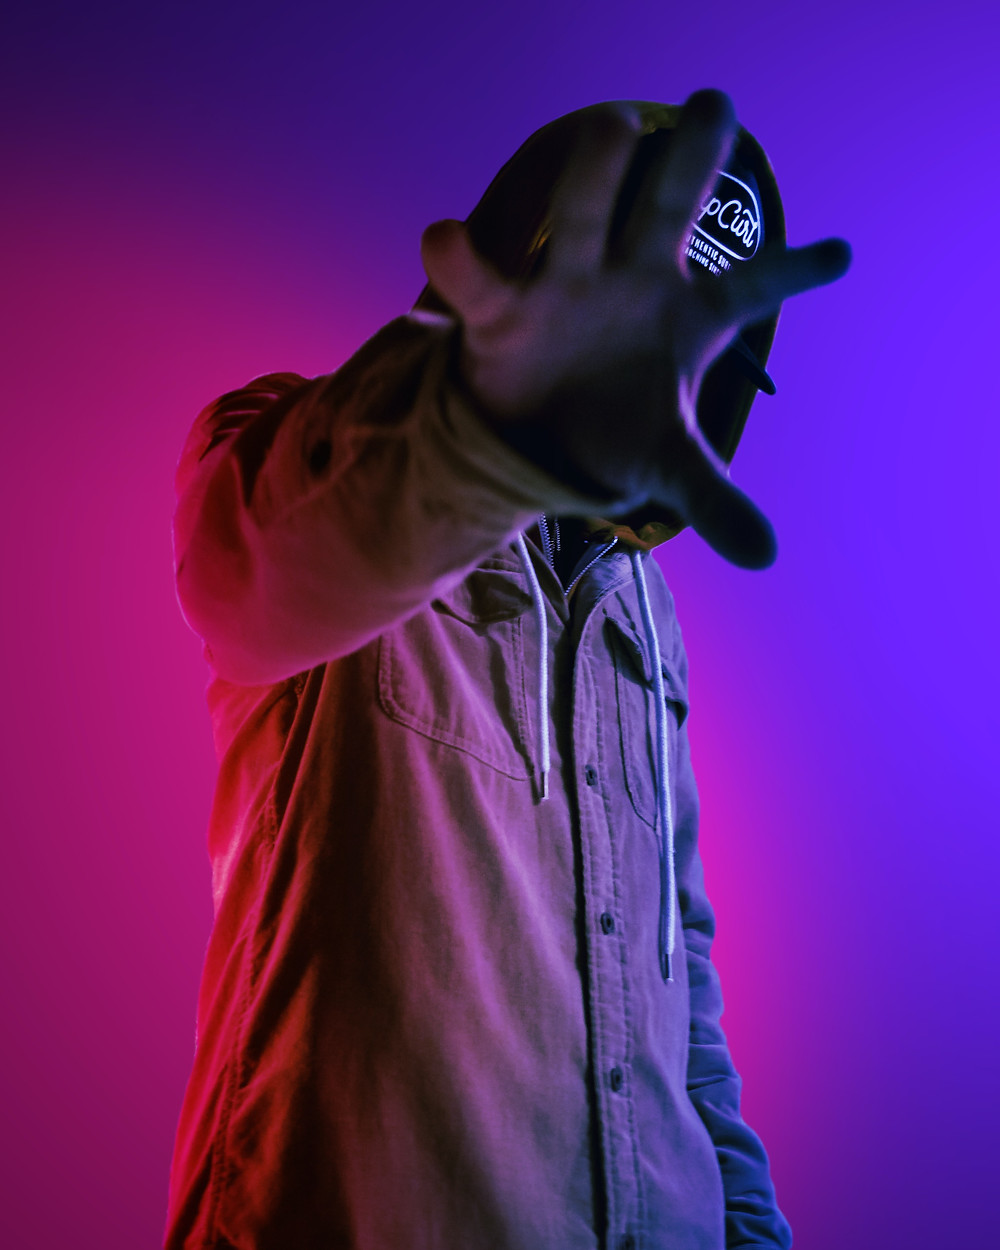 Man hiding his face with his hand while his background is lit - OnecomShop